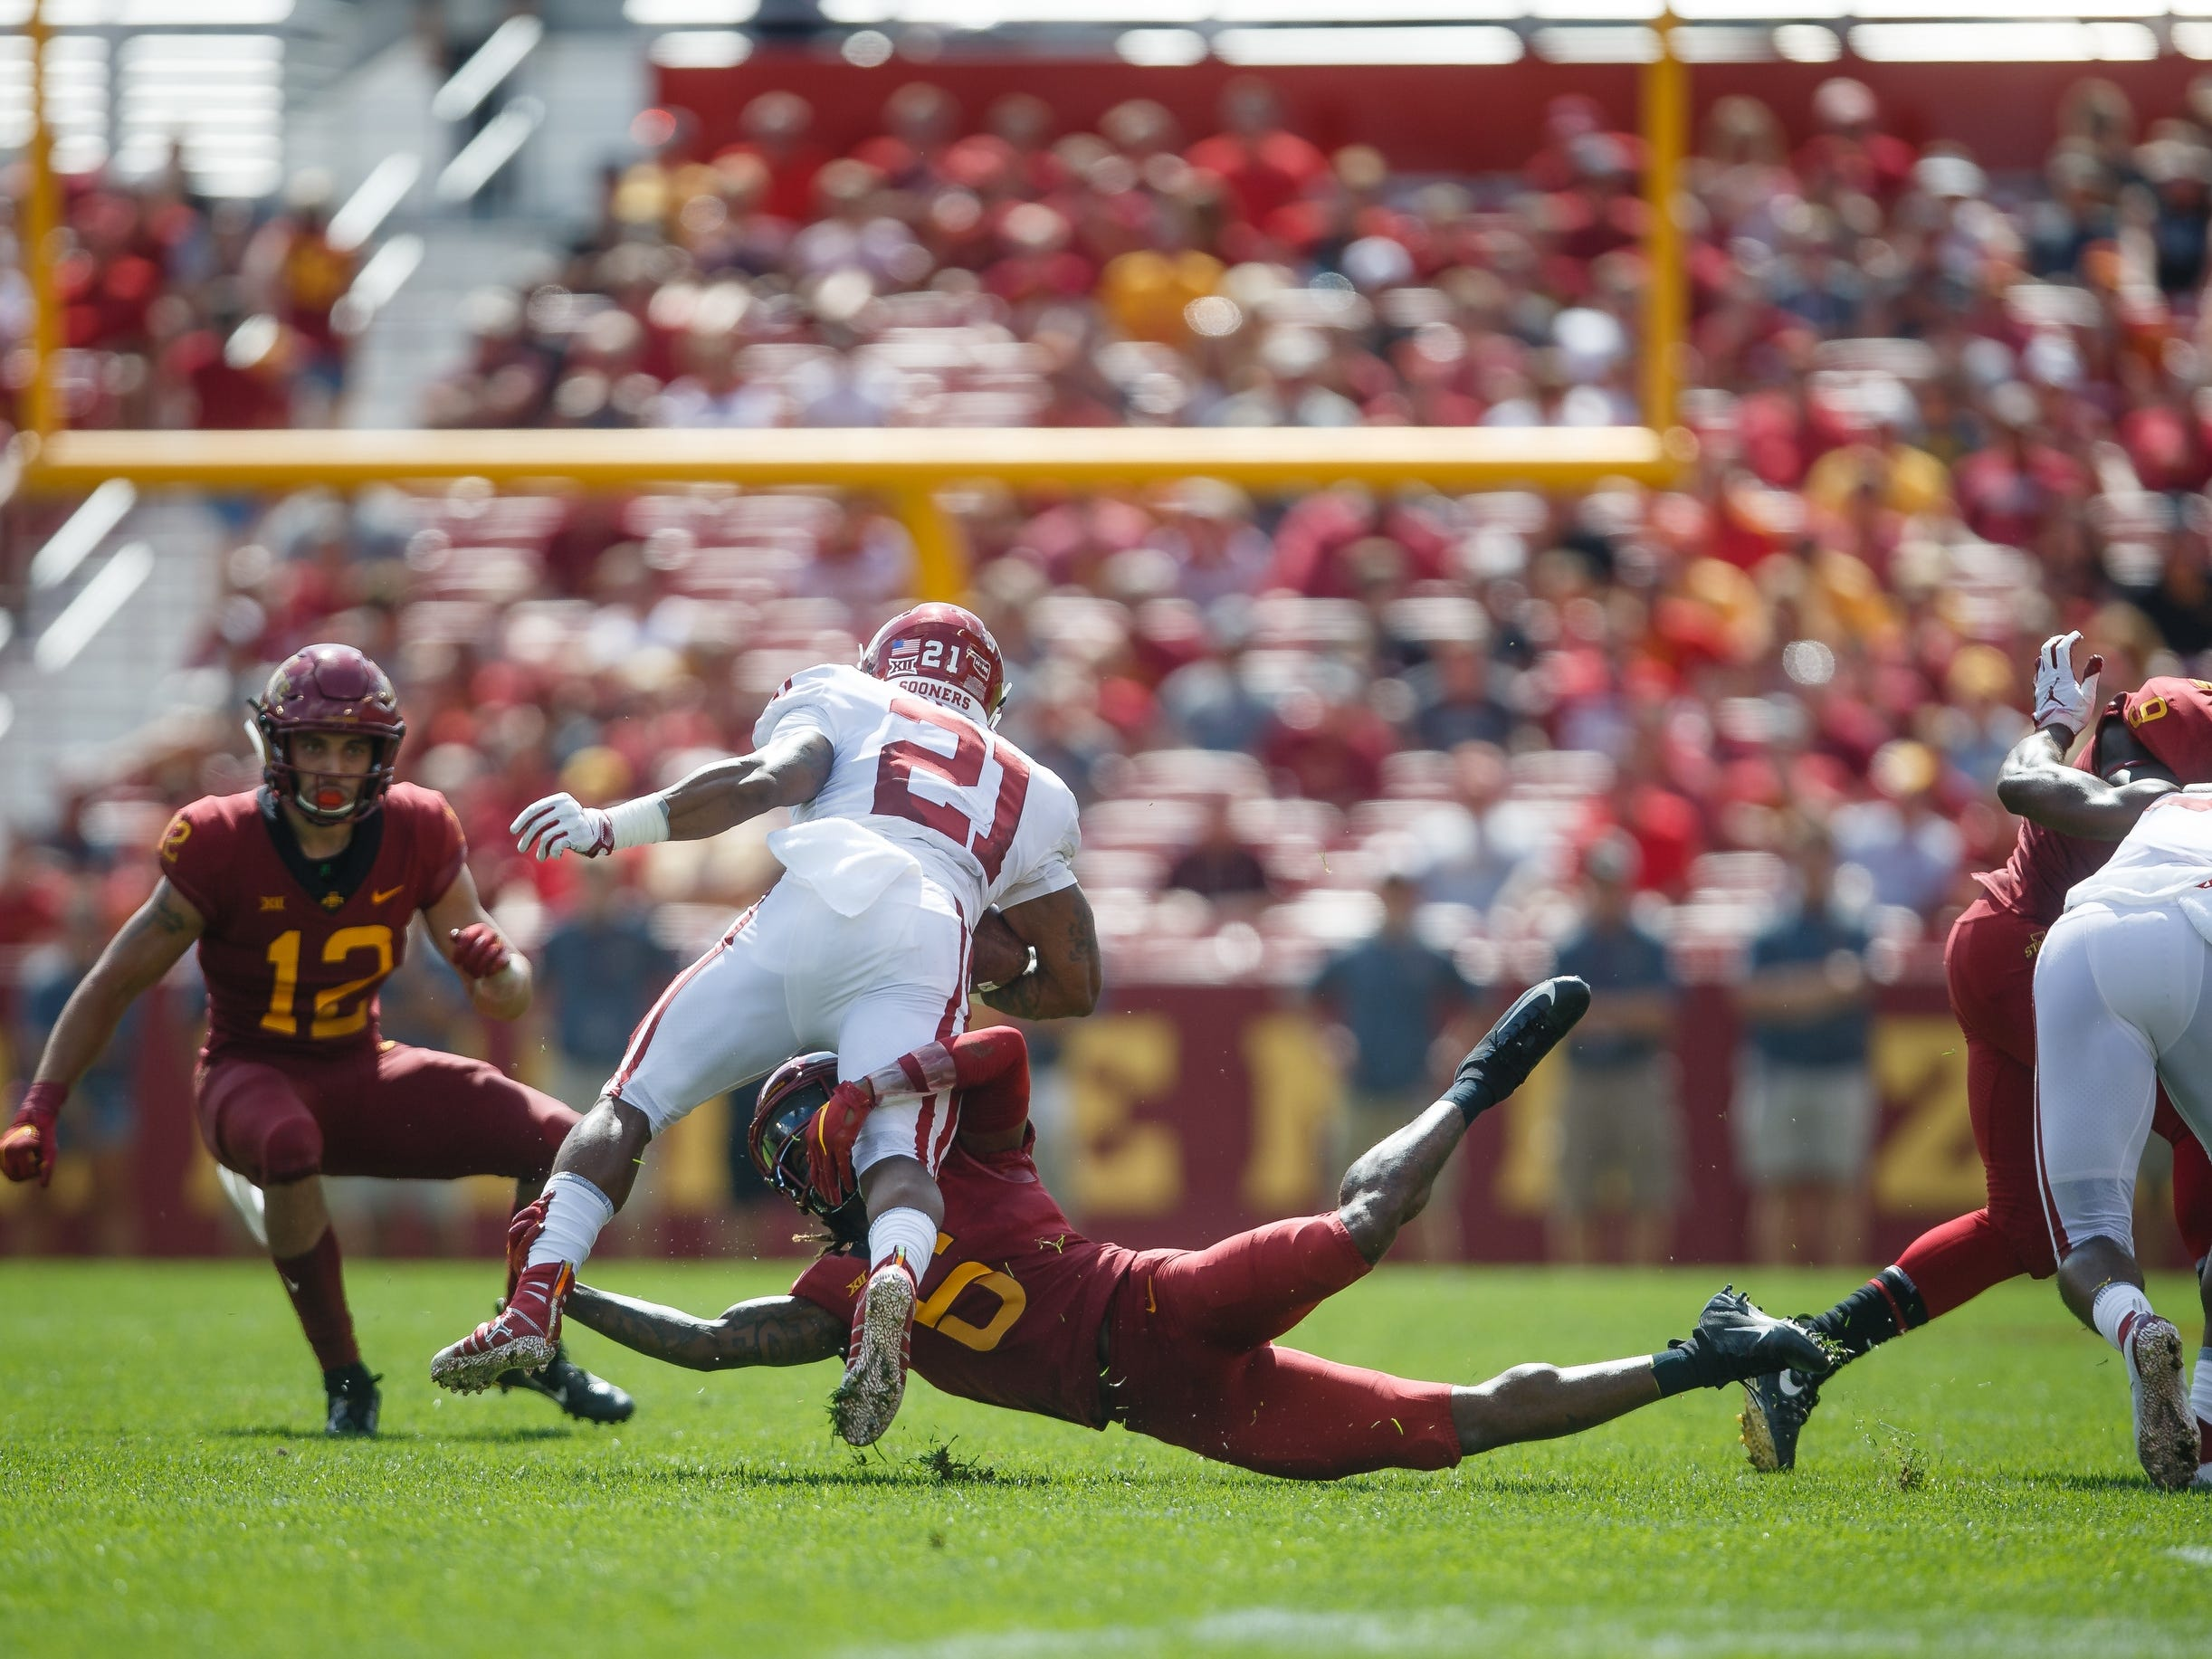 Oklahoma's Marcelias Sutton (21) tries to run over Iowa State's De'Monte Ruth (6) during their football game at Jack Trice Stadium on Saturday, Sept. 15, 2018 in Ames. Oklahoma would go on to win 37-27.